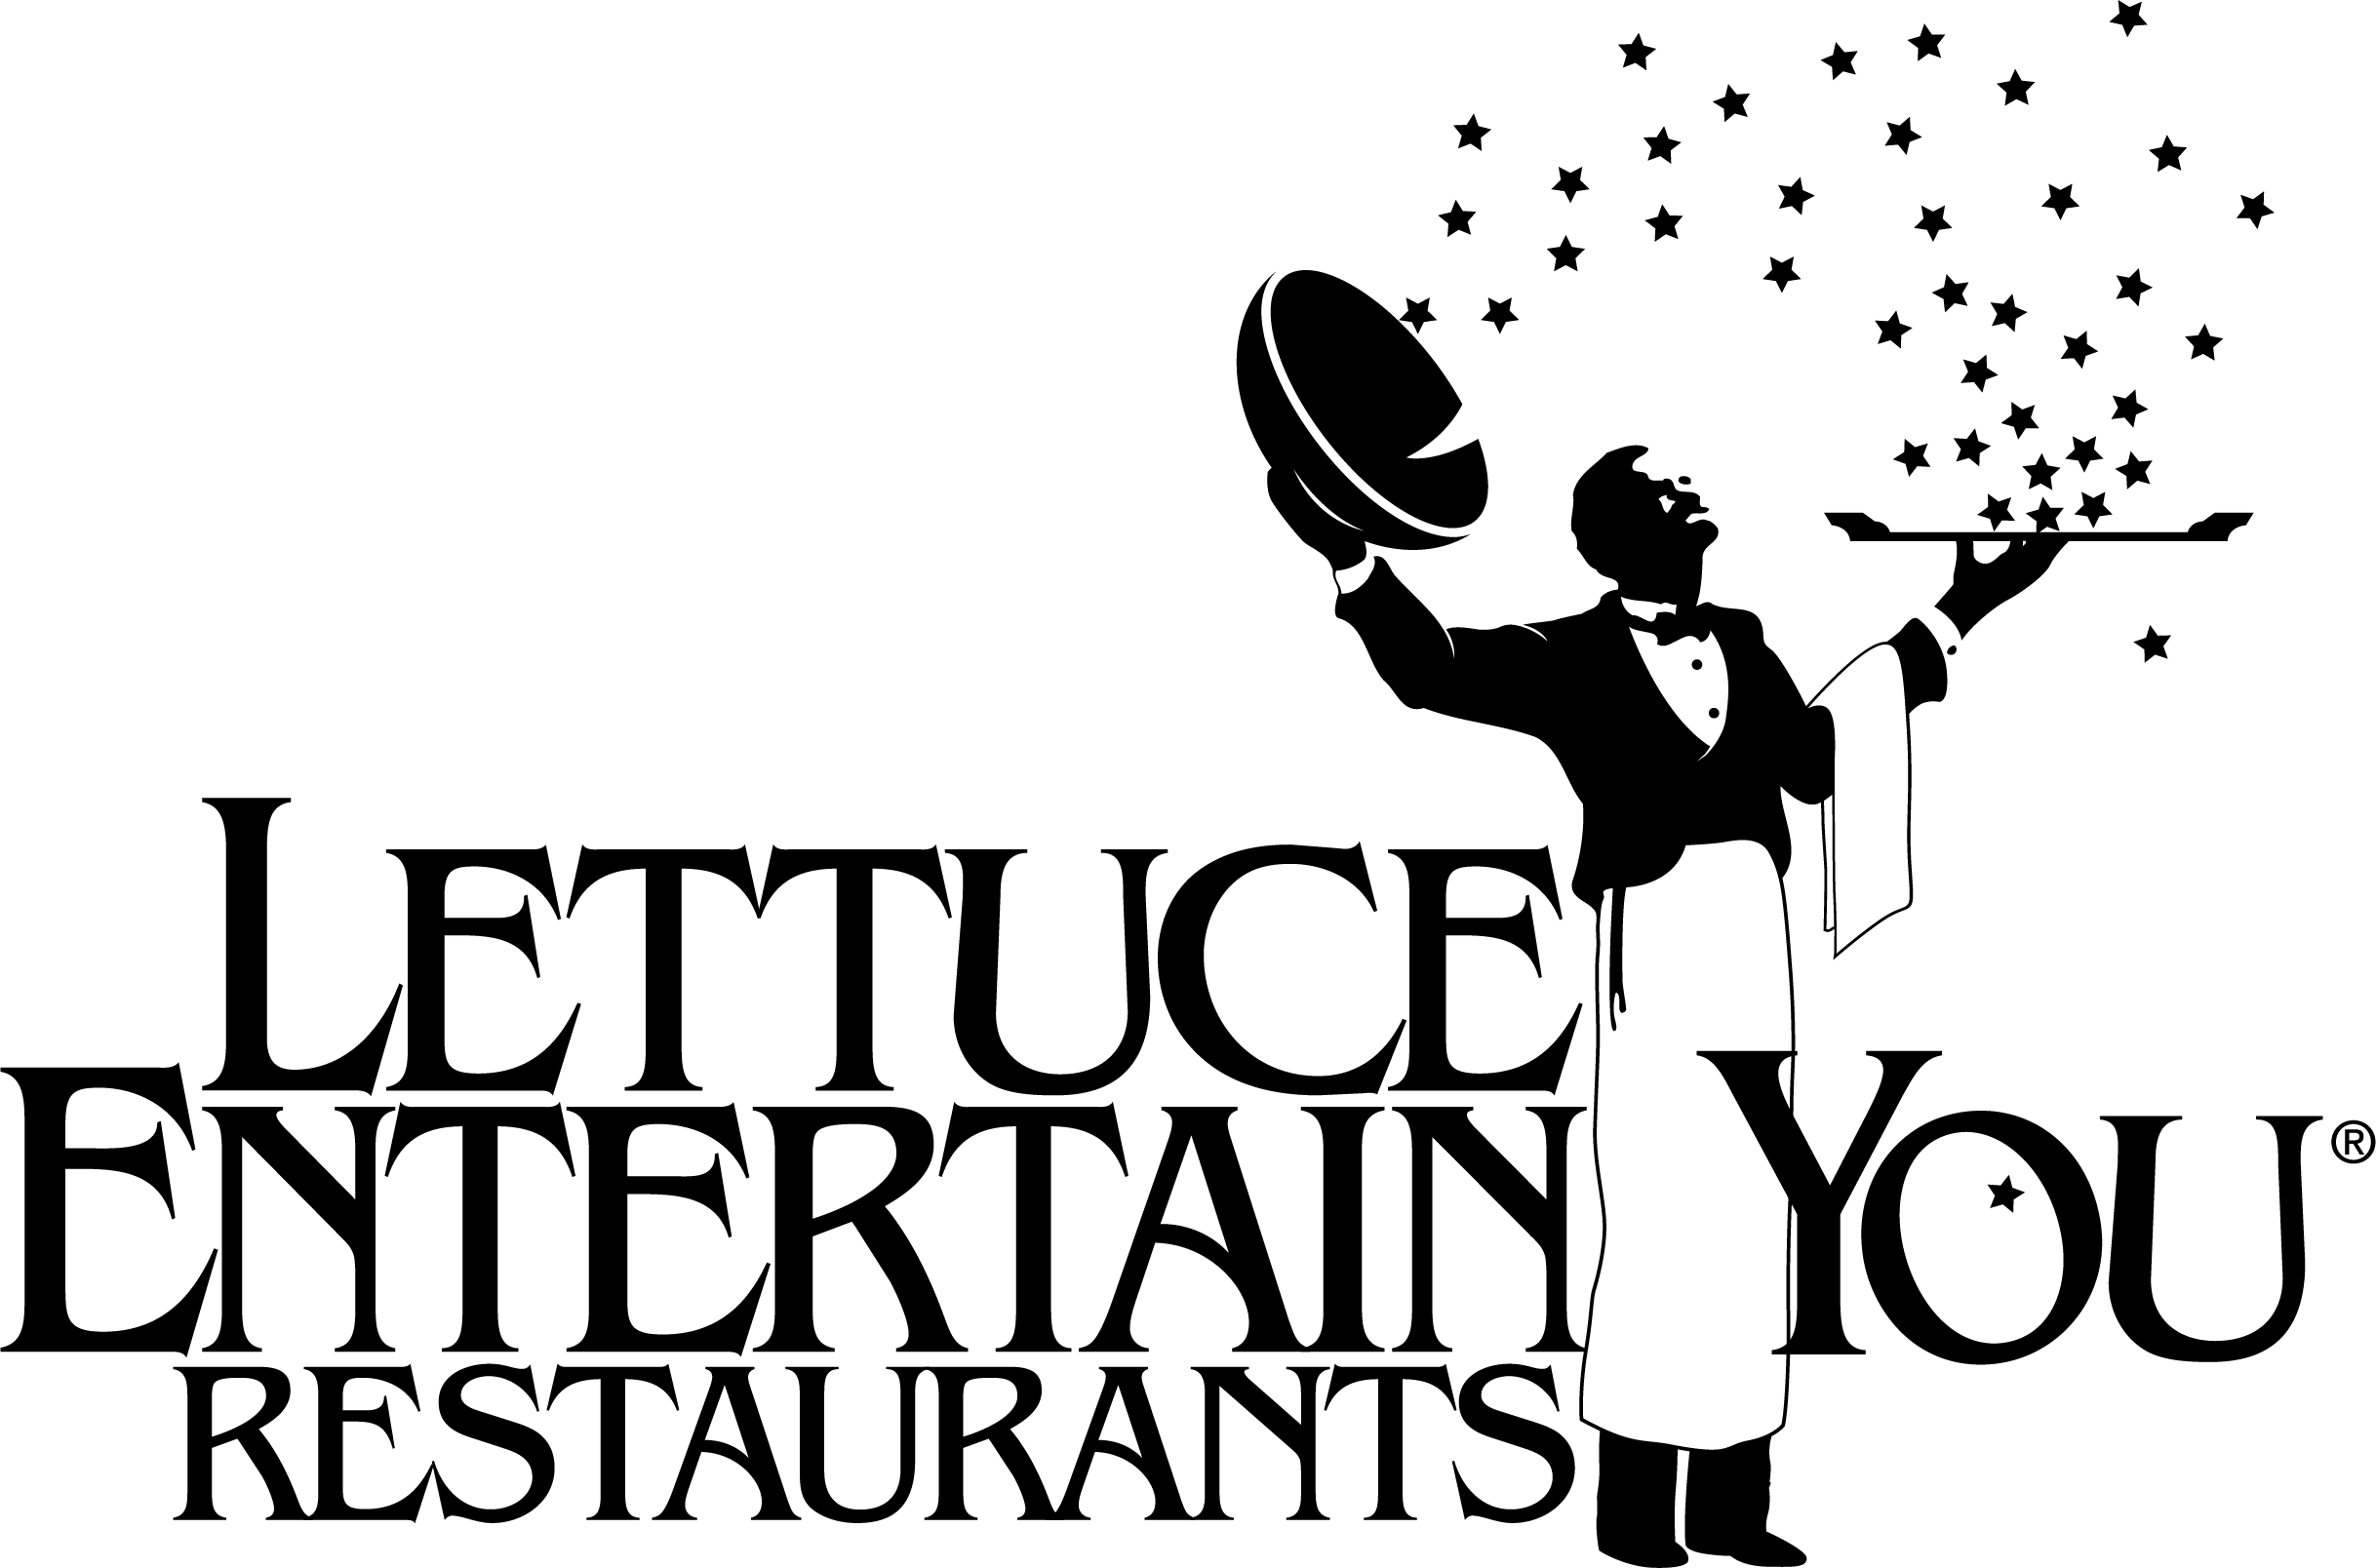 Lettuce Entertain You Enterprises logo